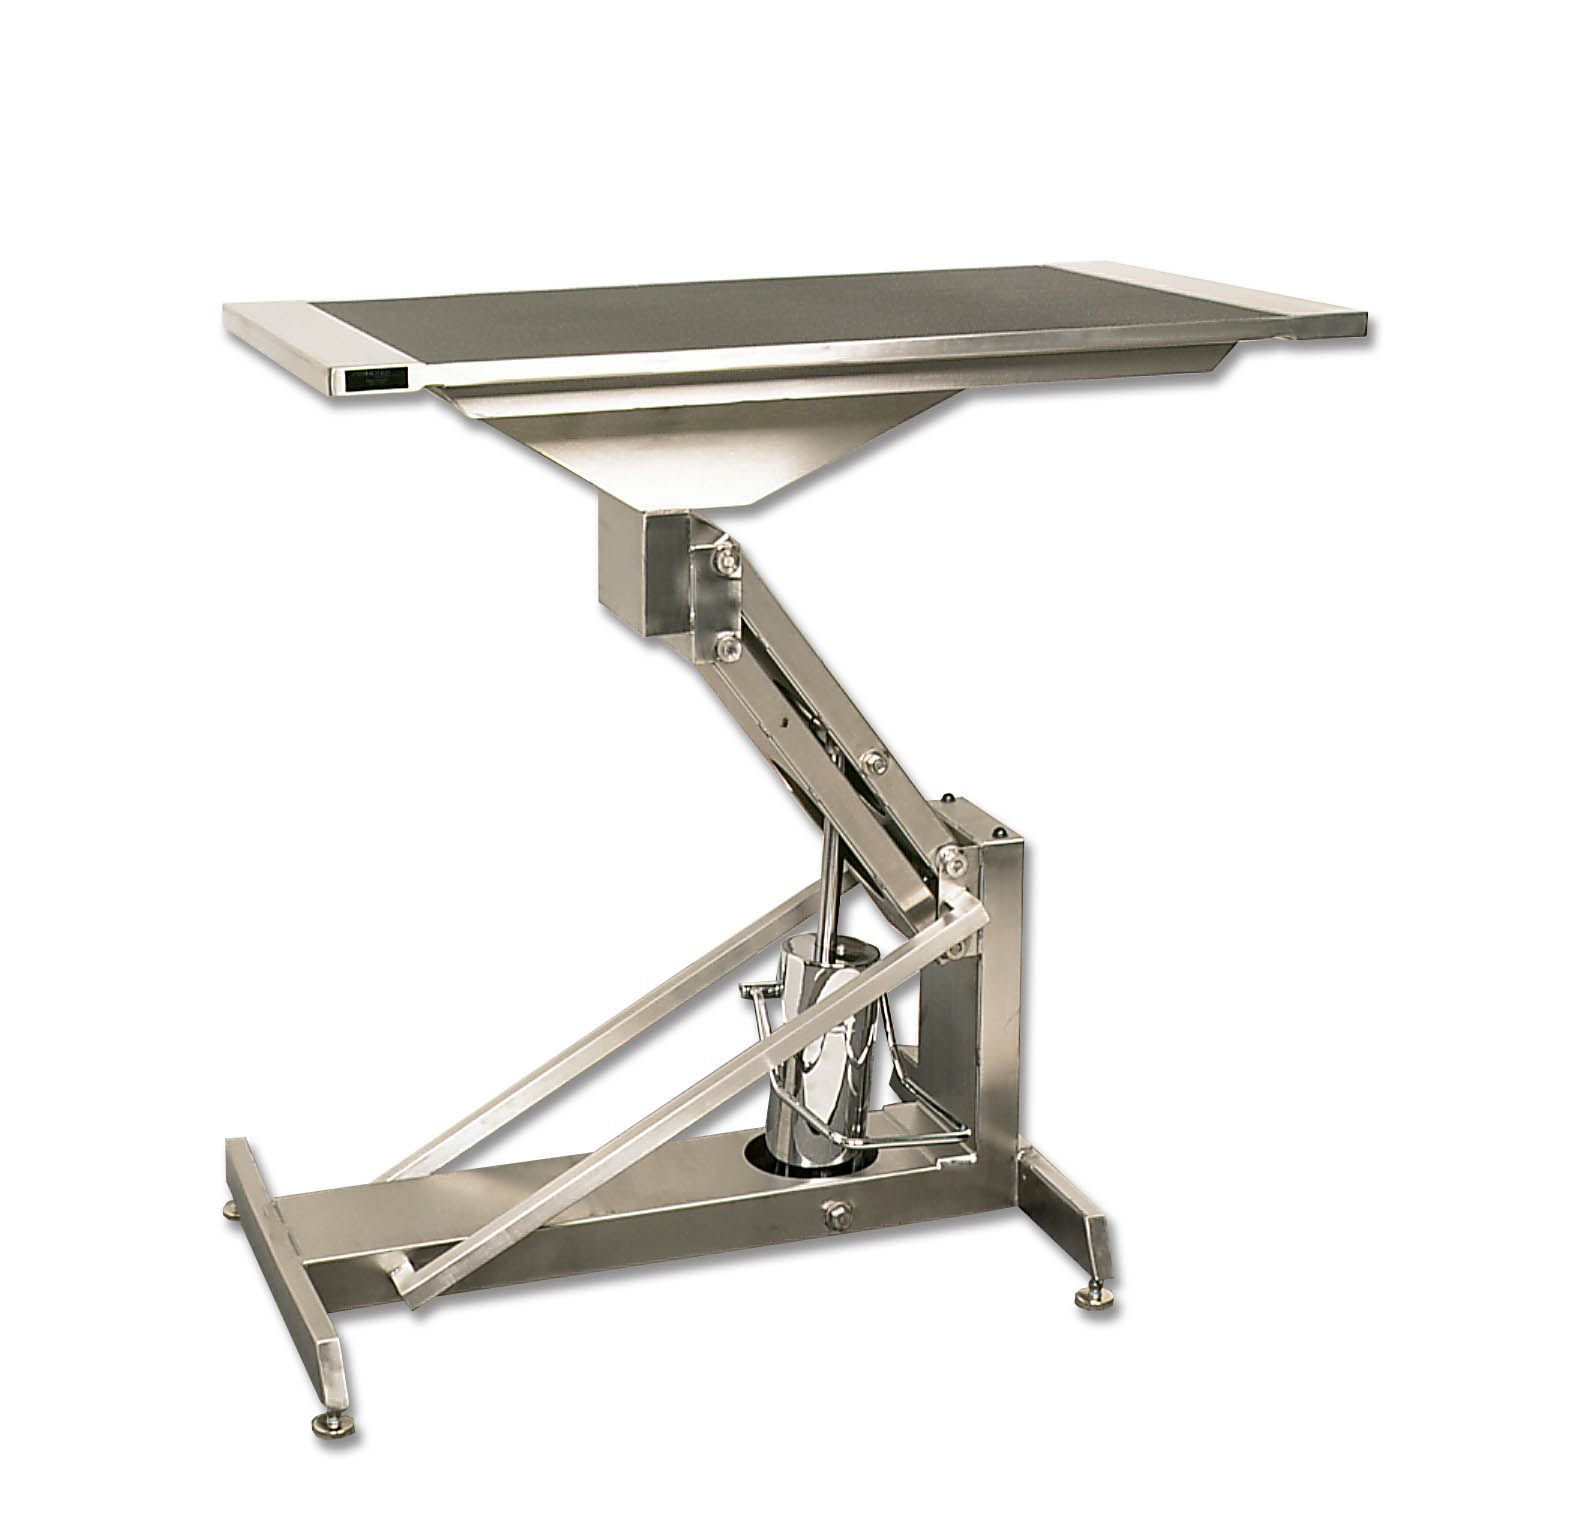 Hydraulic Table Lift Kits : Forever stainless steel large hydraulic lift table